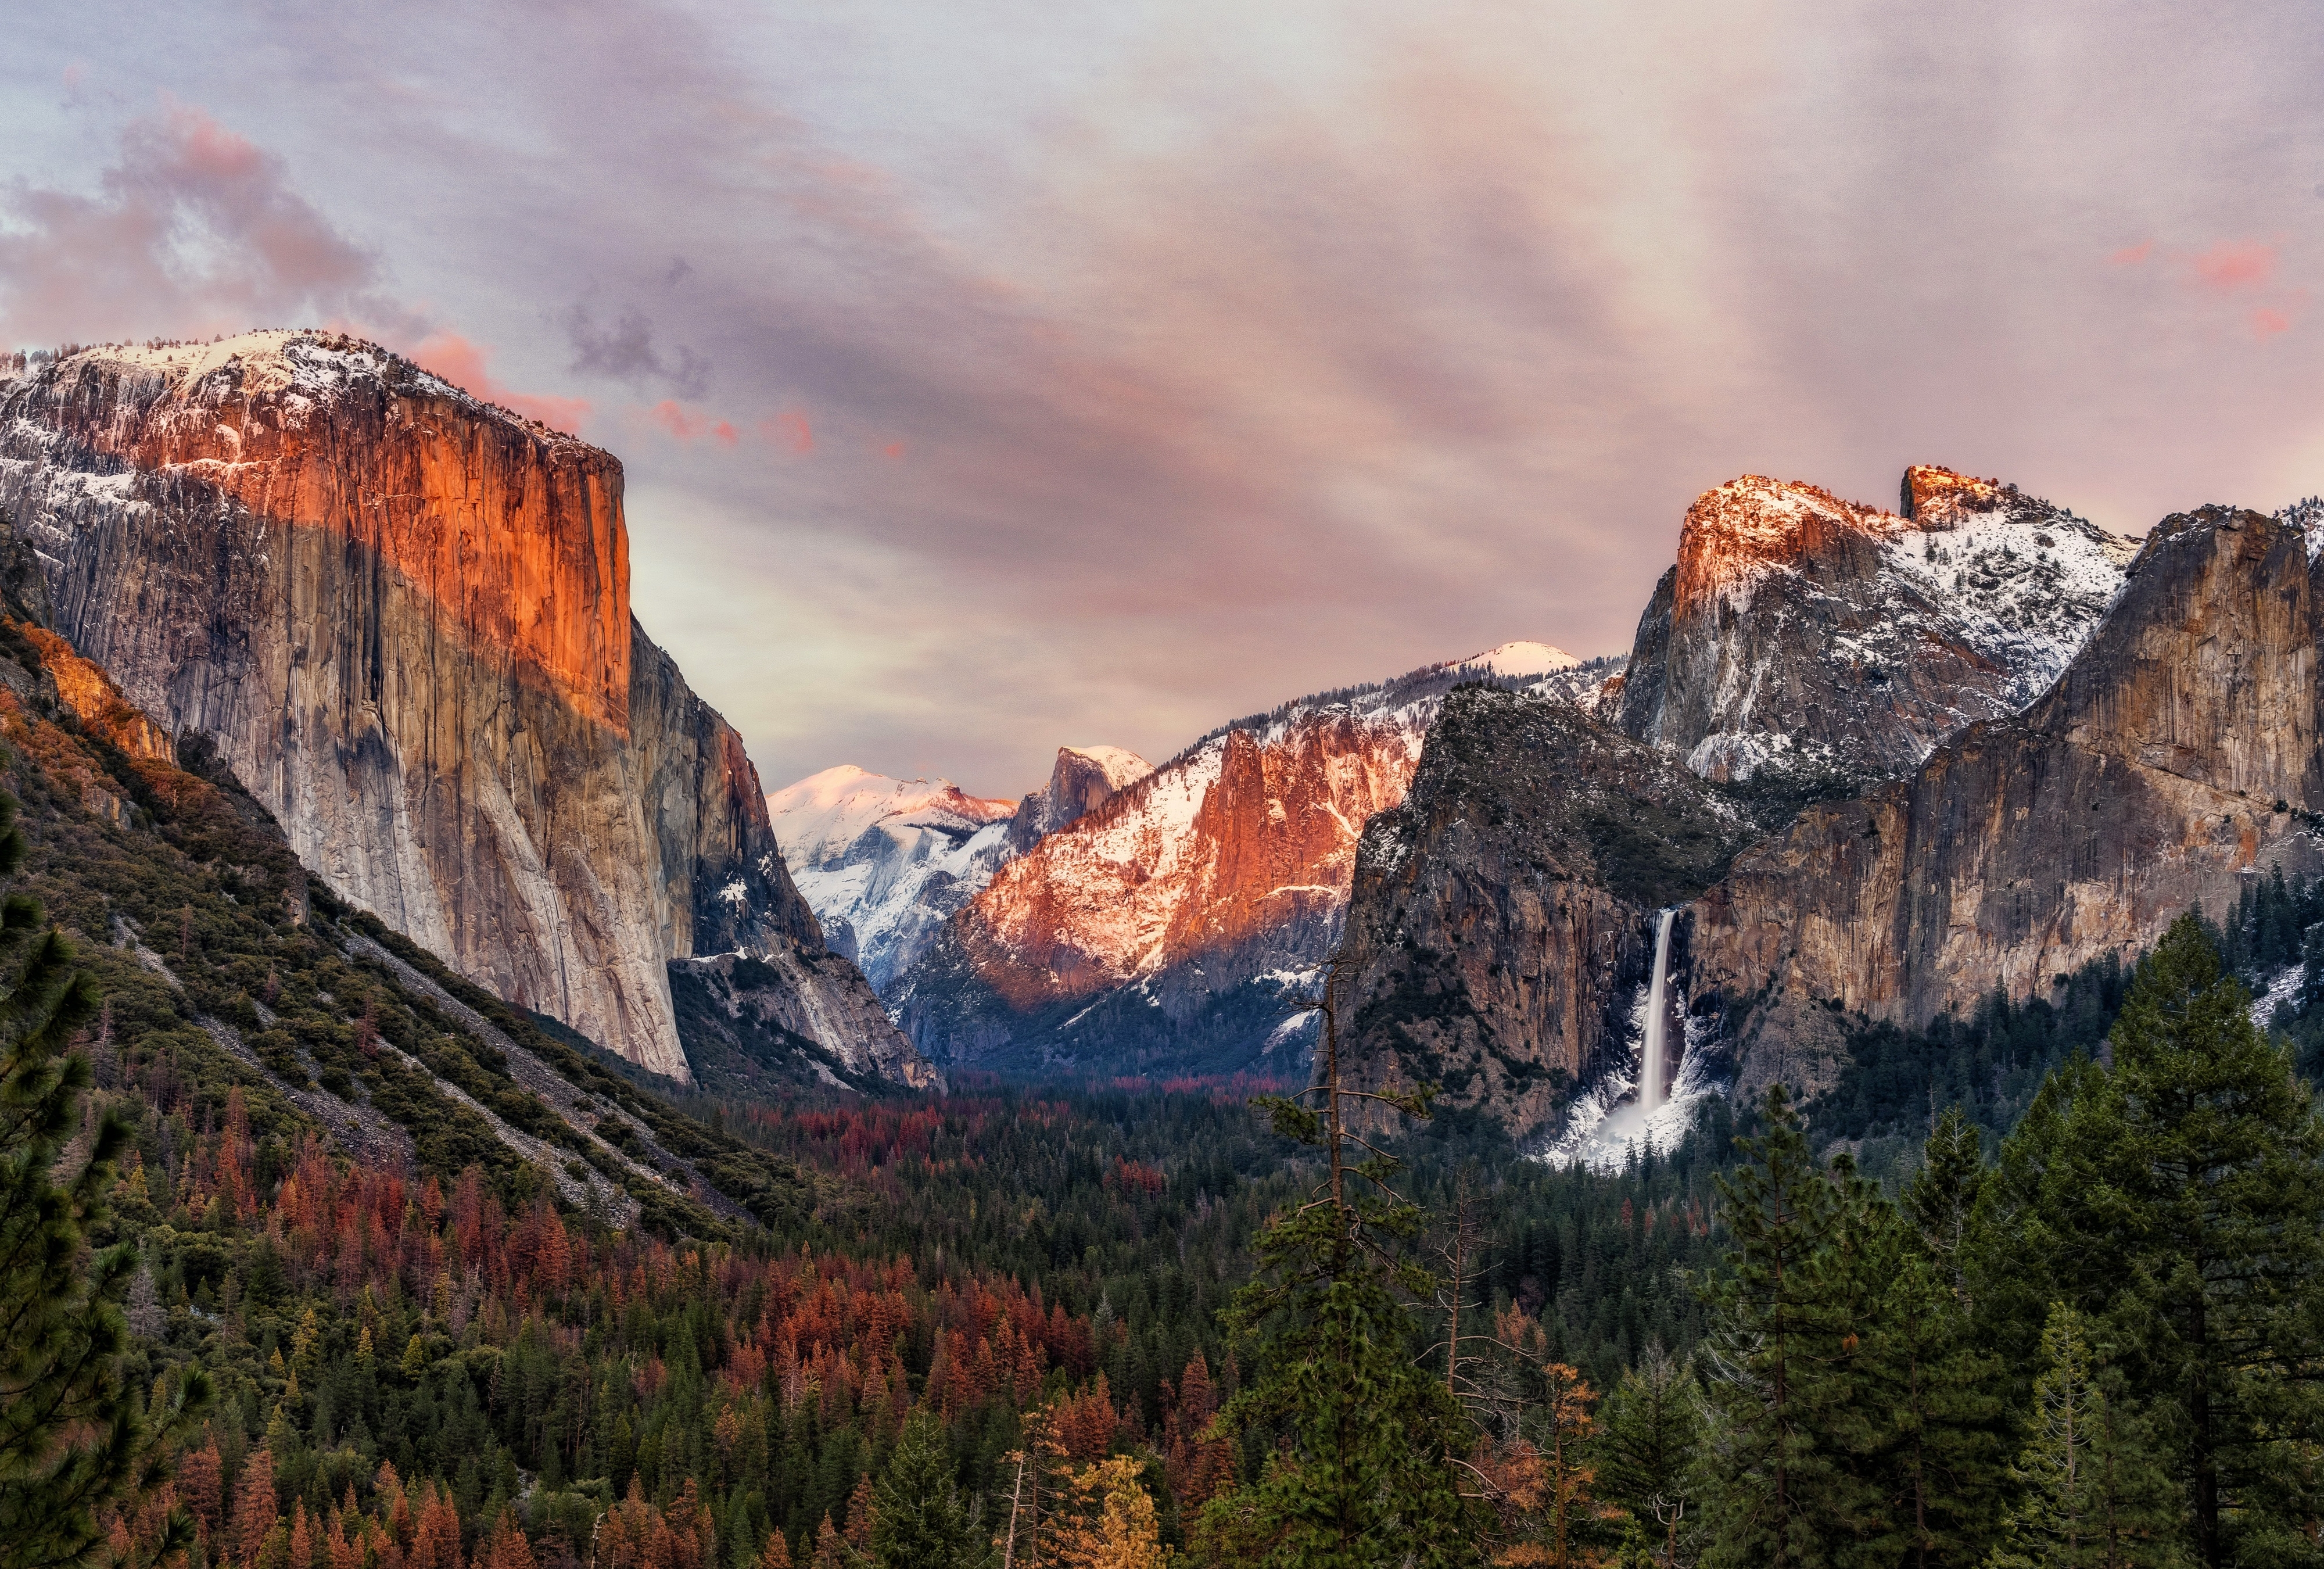 wallpaper yosemite national park, el capitan, yosemite valley, 4k